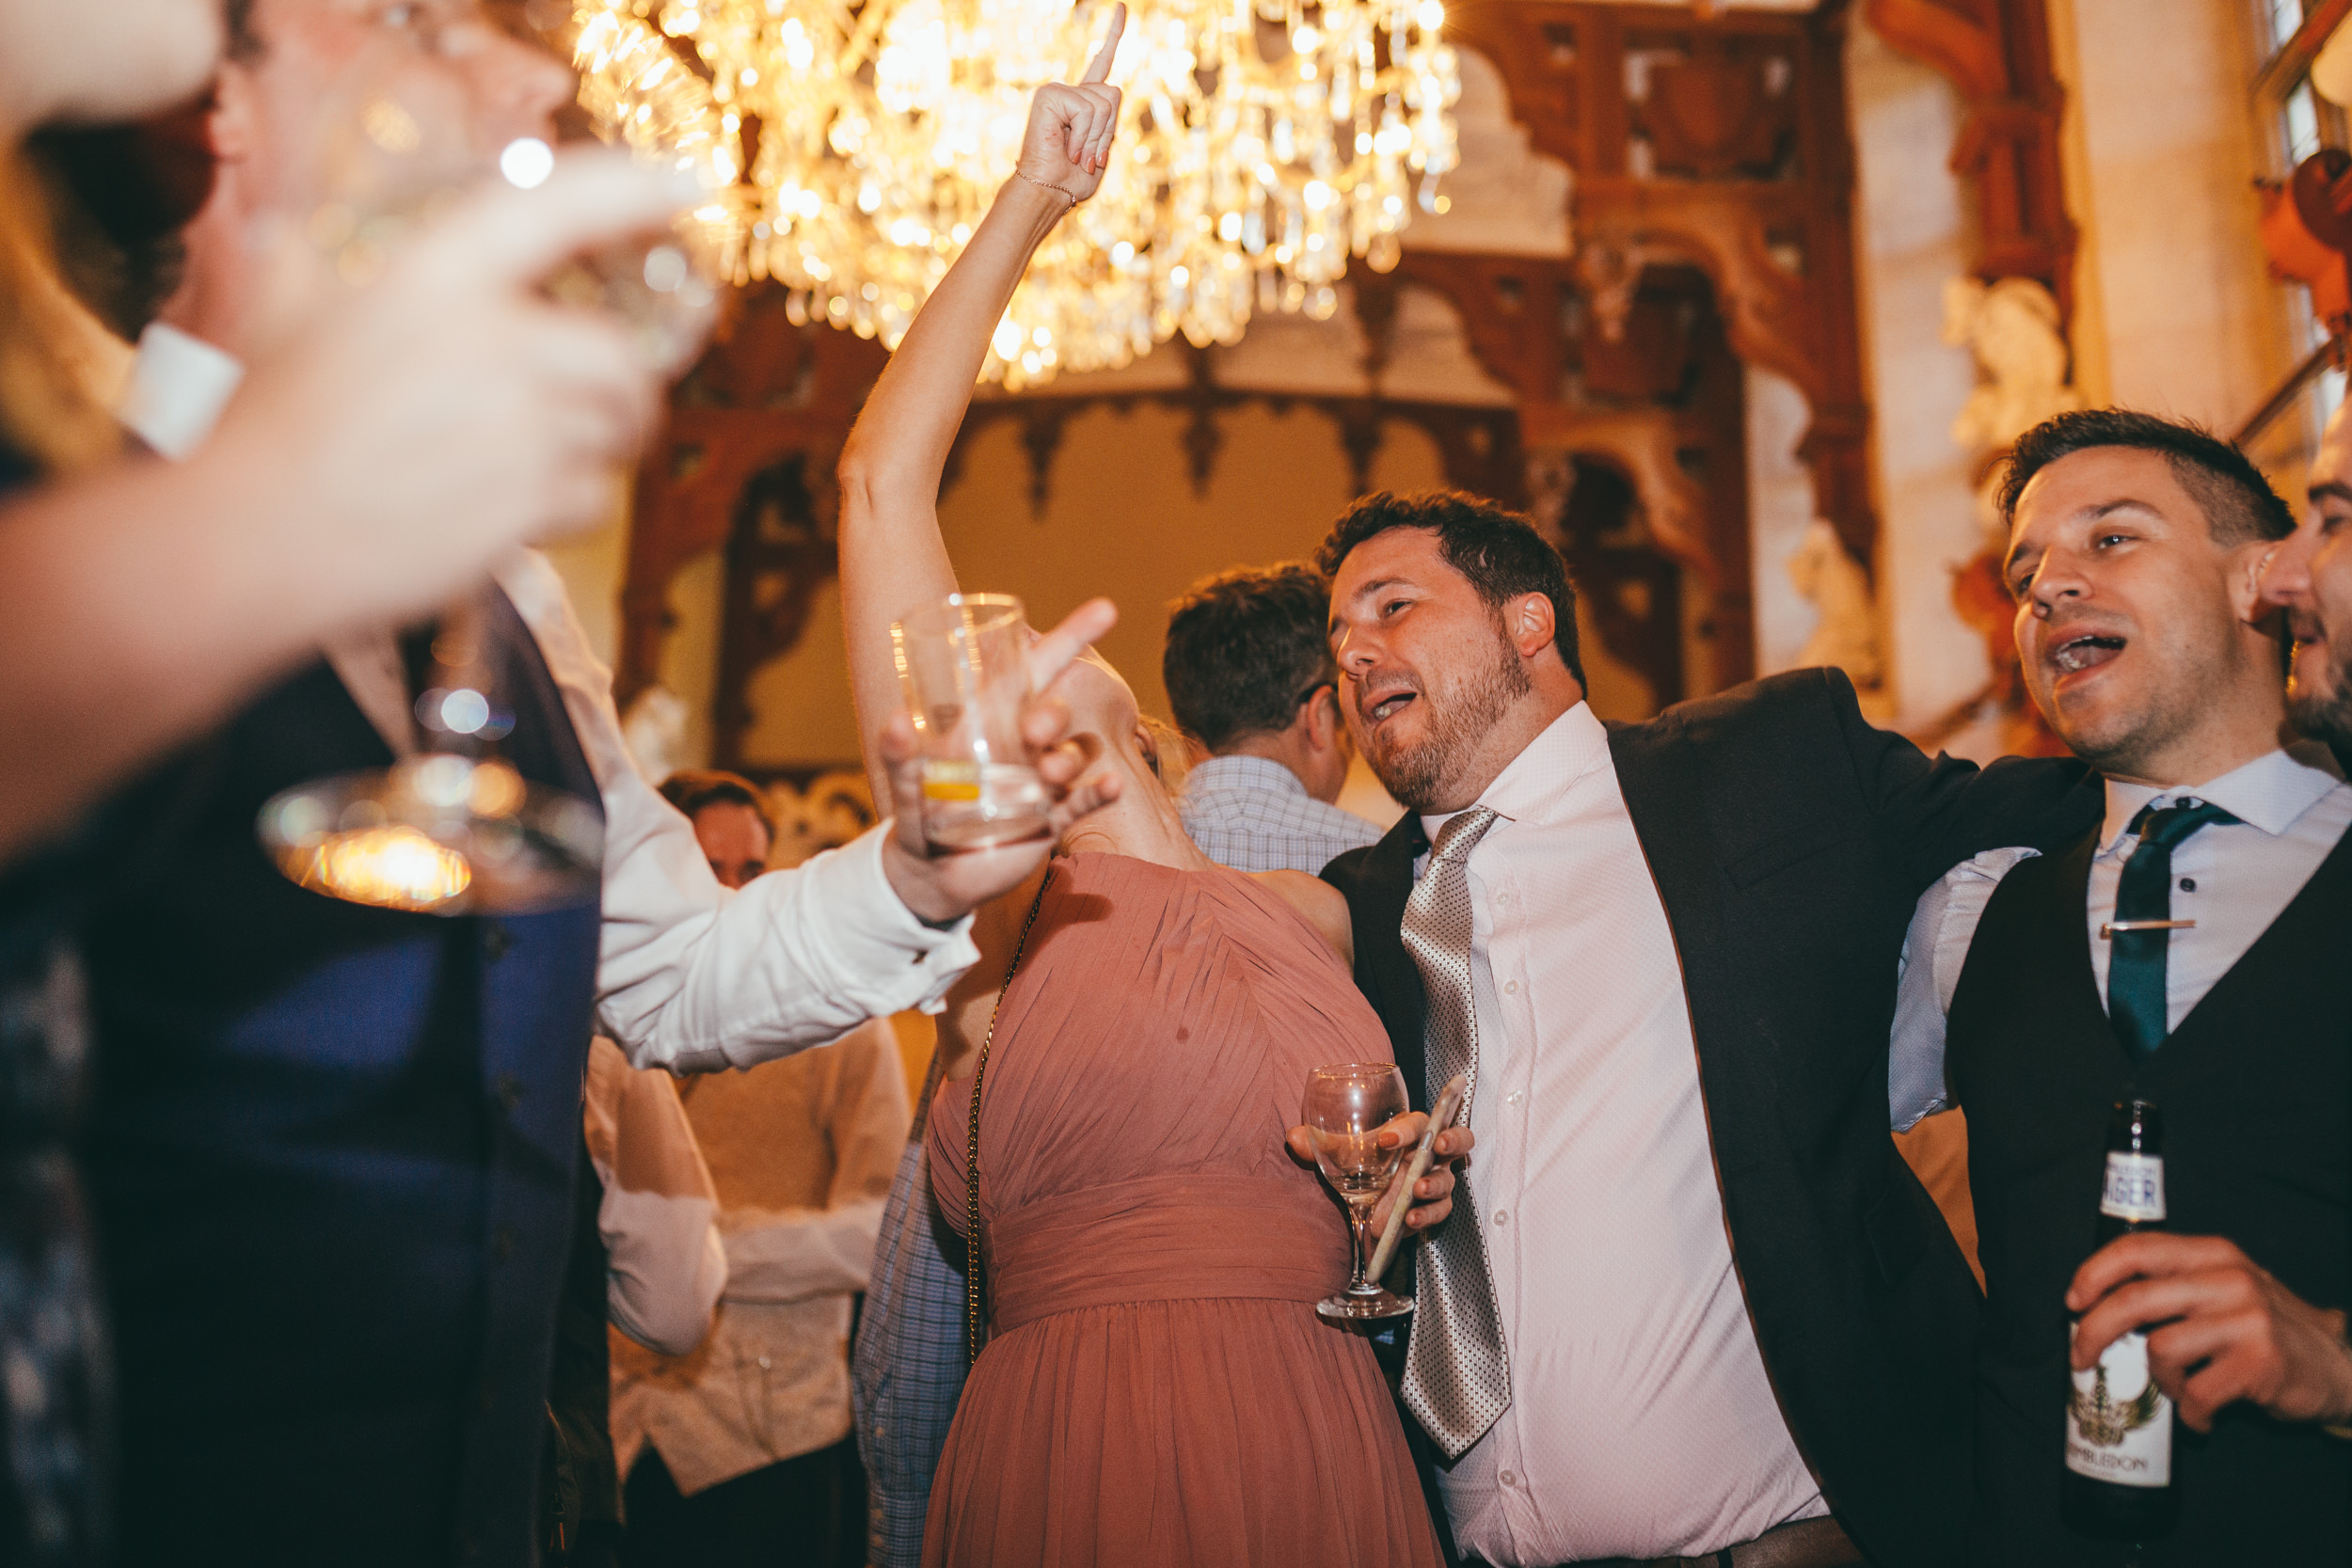 Wedding guests enjoying themselves on the dance floor at Harlaxton Manor